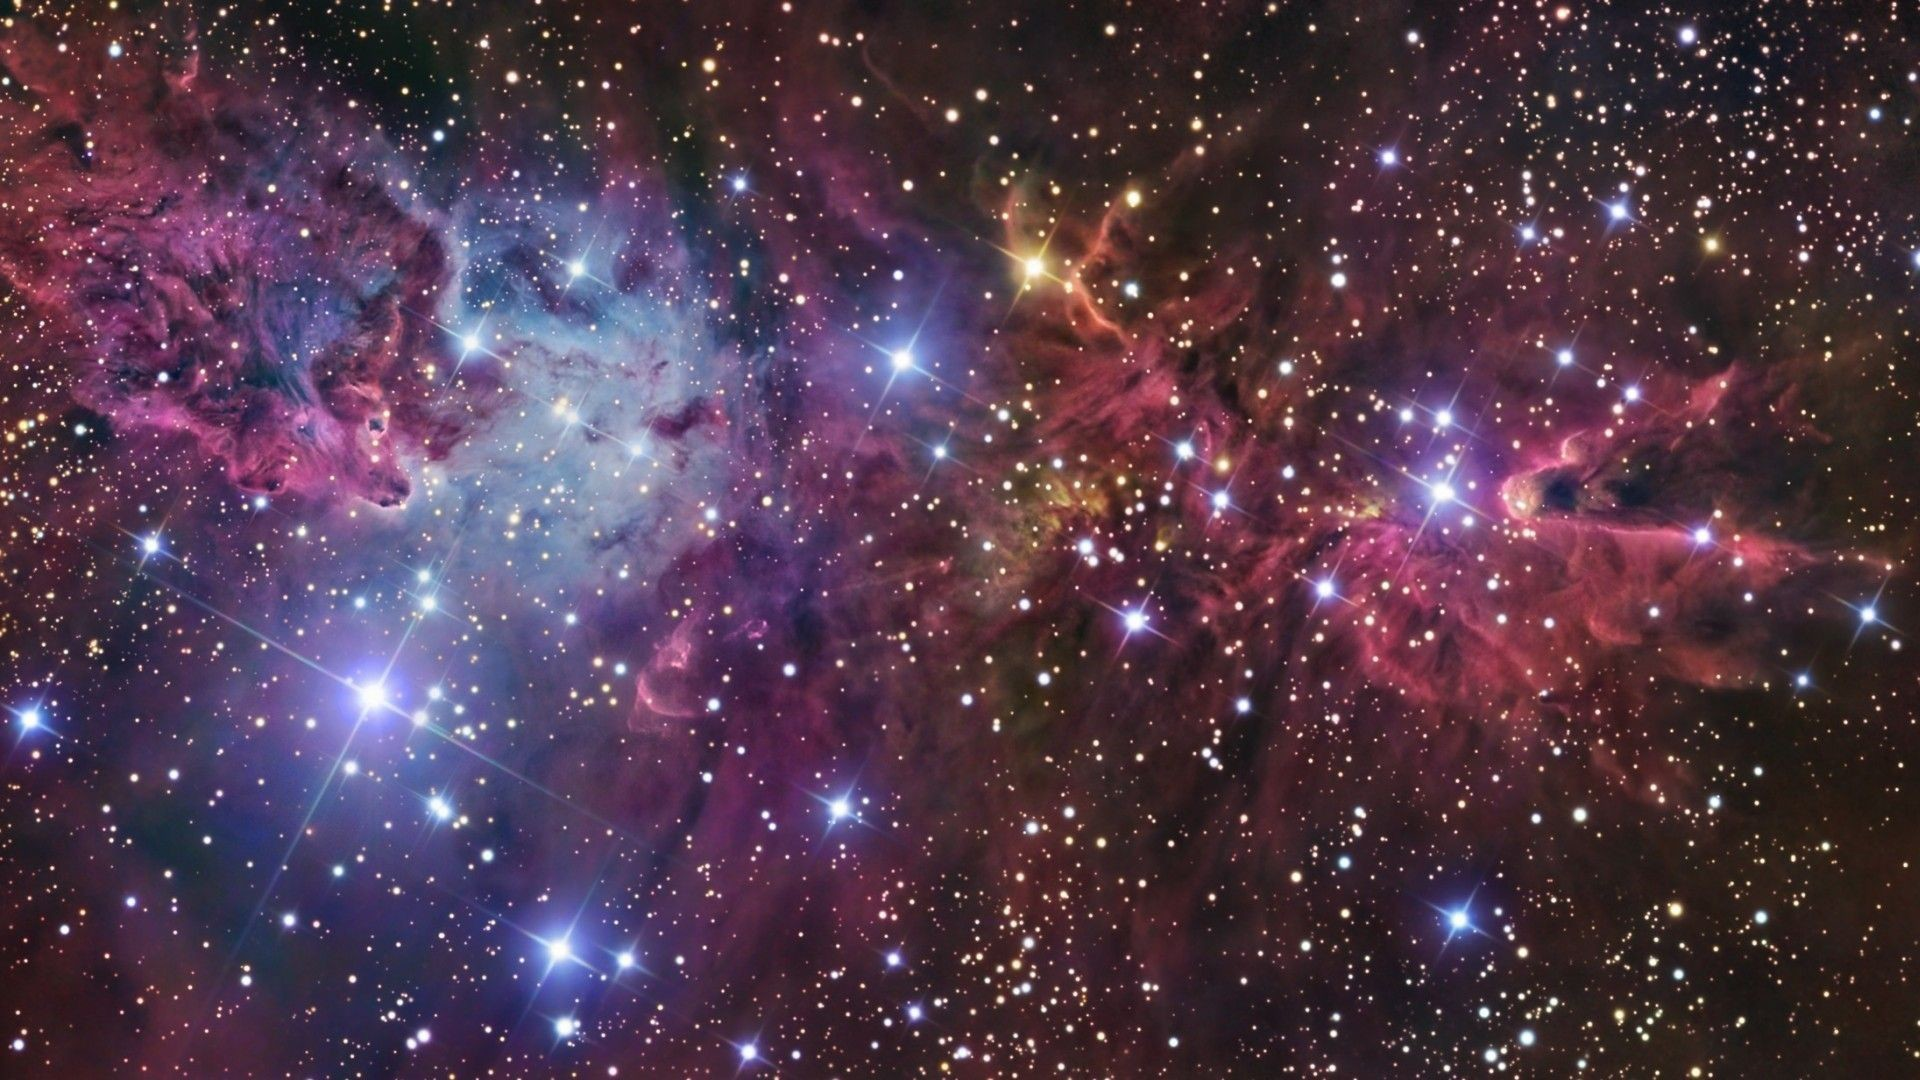 Outer Space Stars Wallpaper Hd